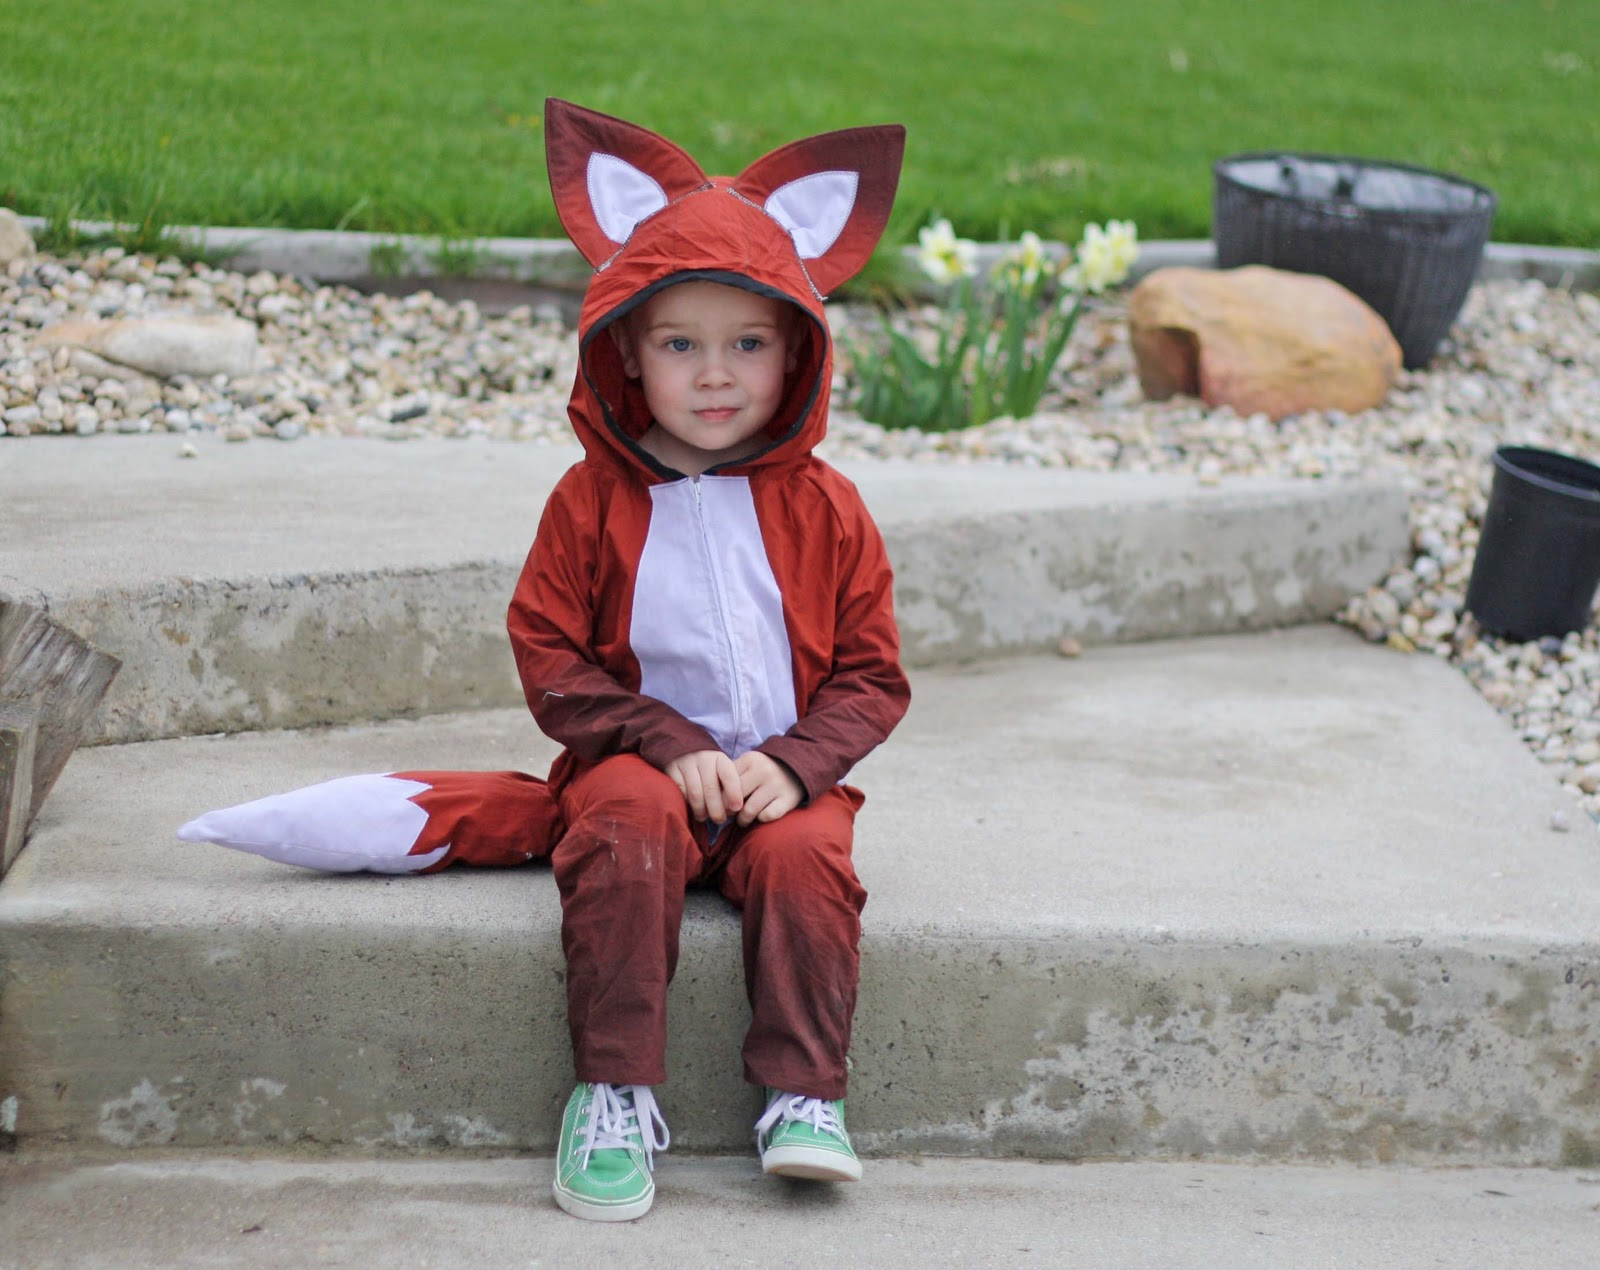 Running with scissors woodland animal costume sewing pattern now all our favorite costumes are available for you to make at home solutioingenieria Gallery